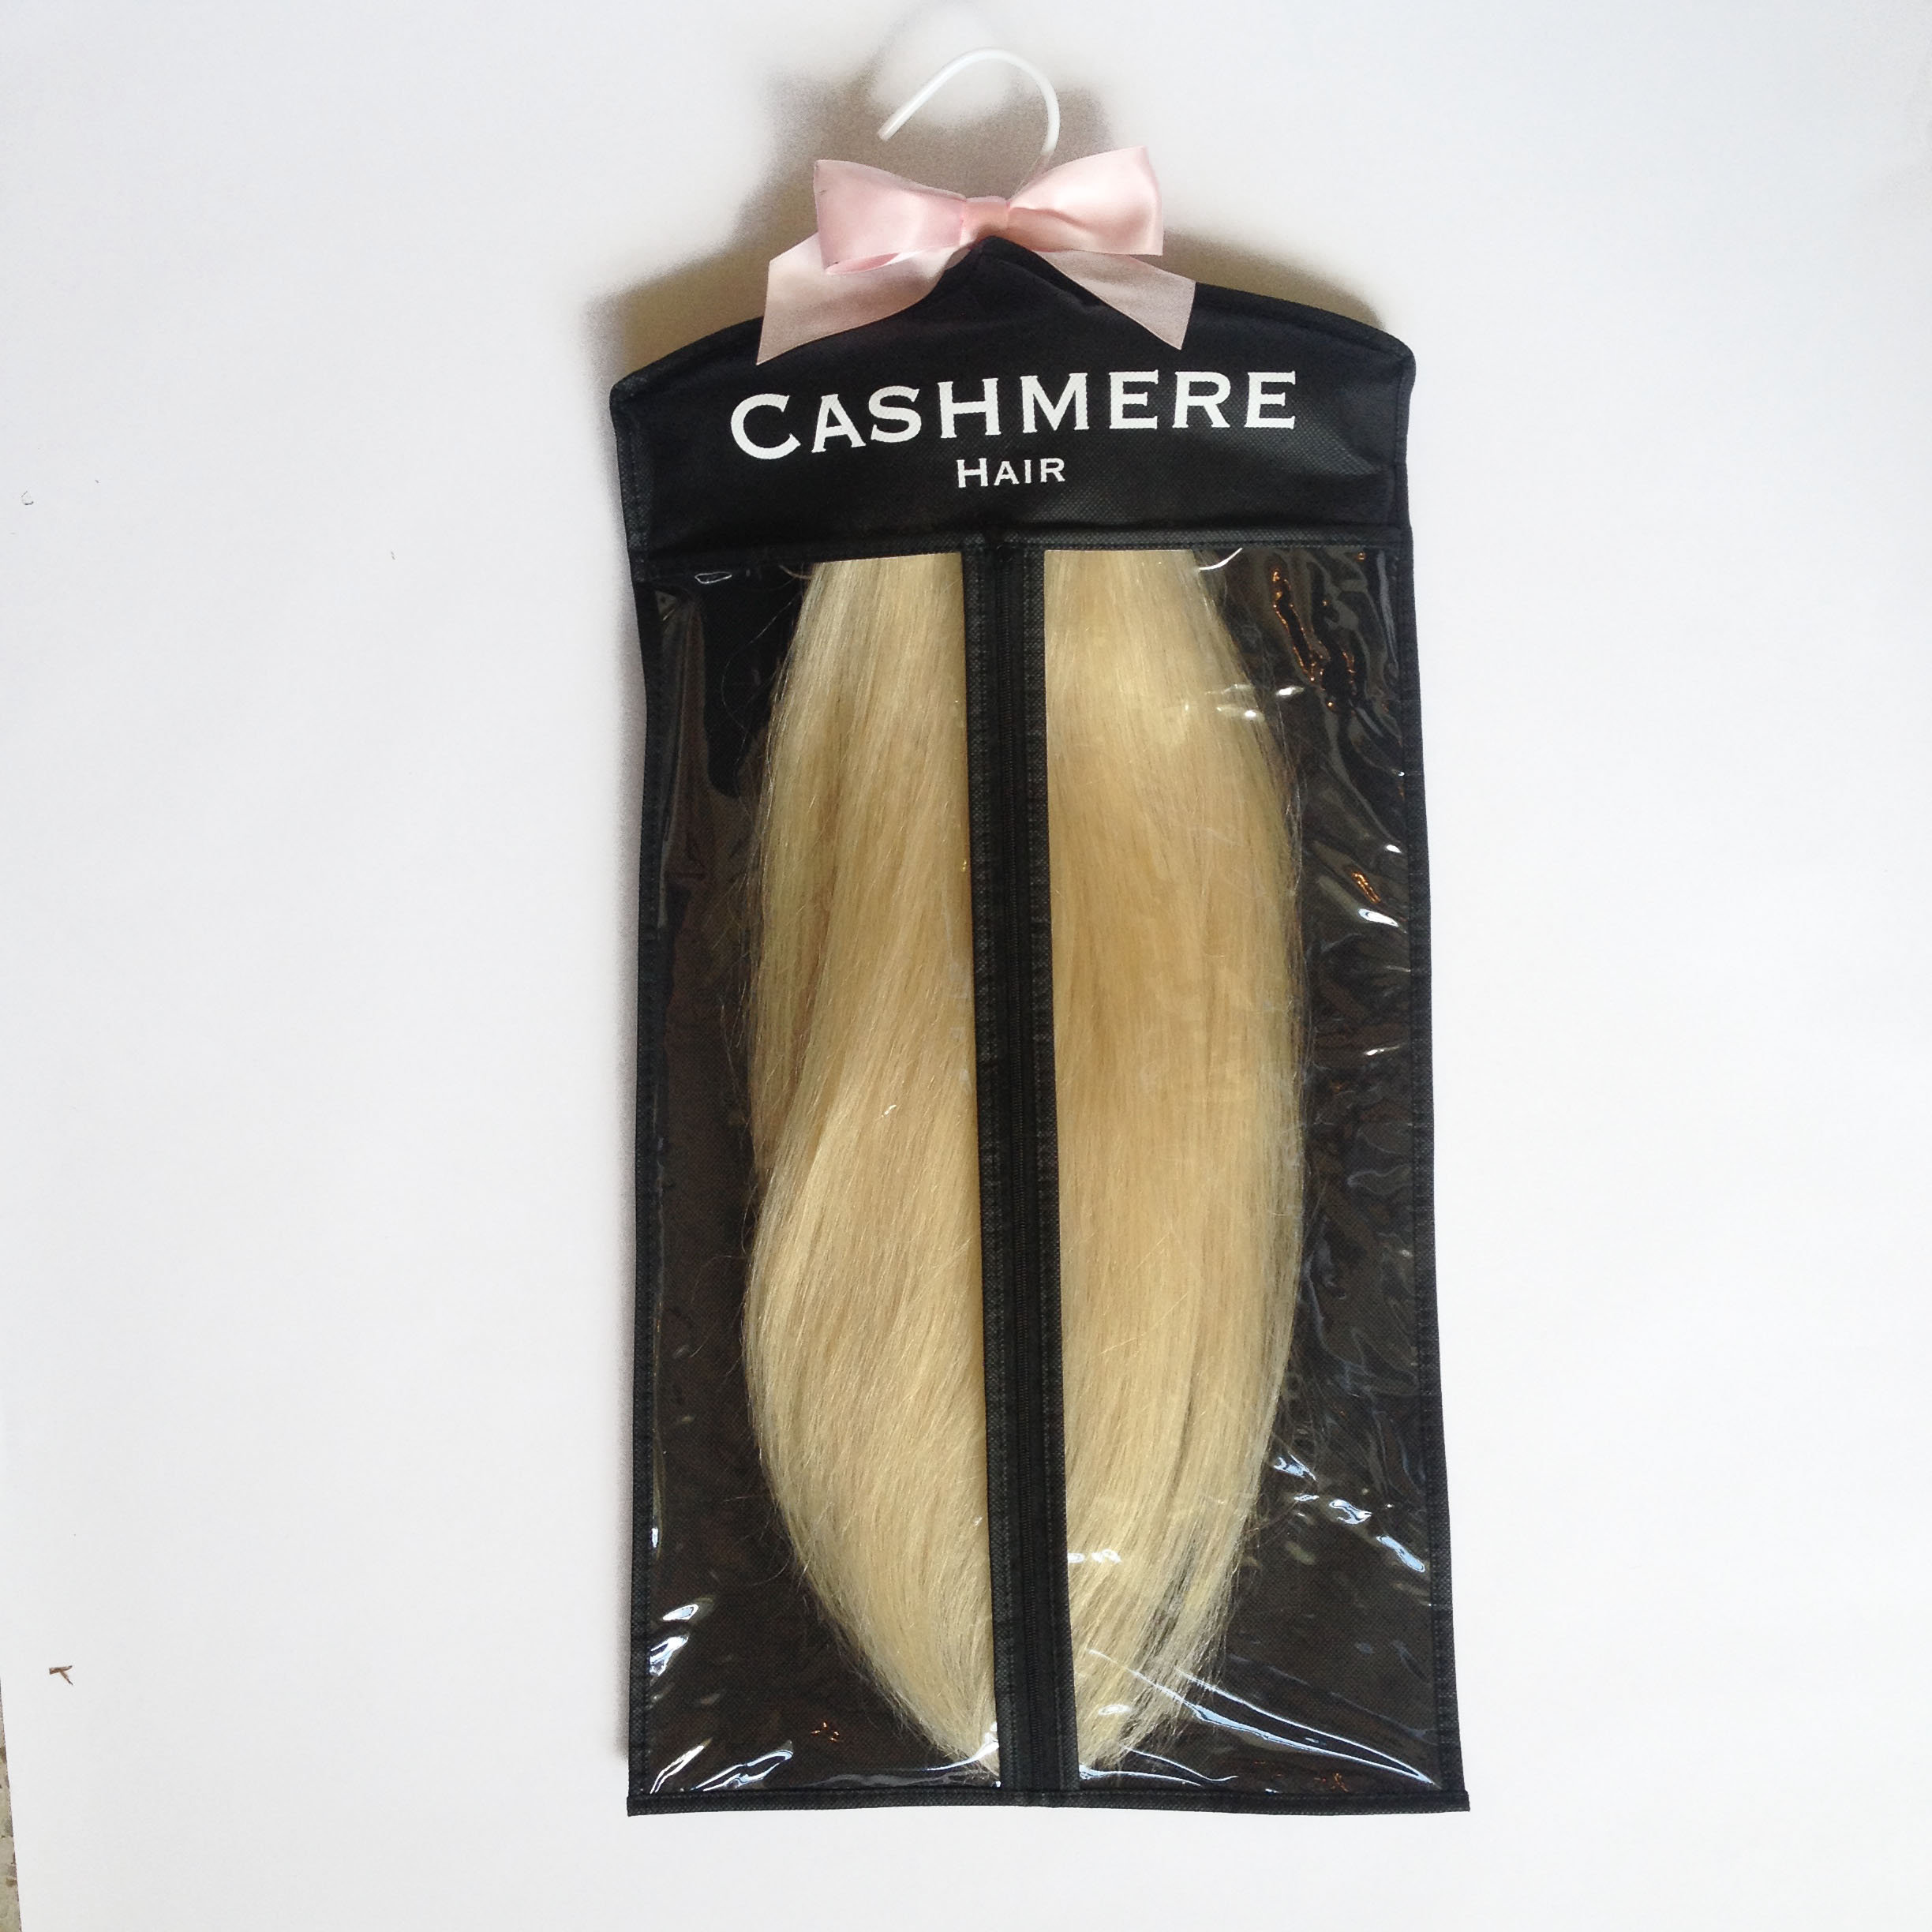 New! THE LUXURY BAG Is The Perfect Way To Store Cashmere Hair